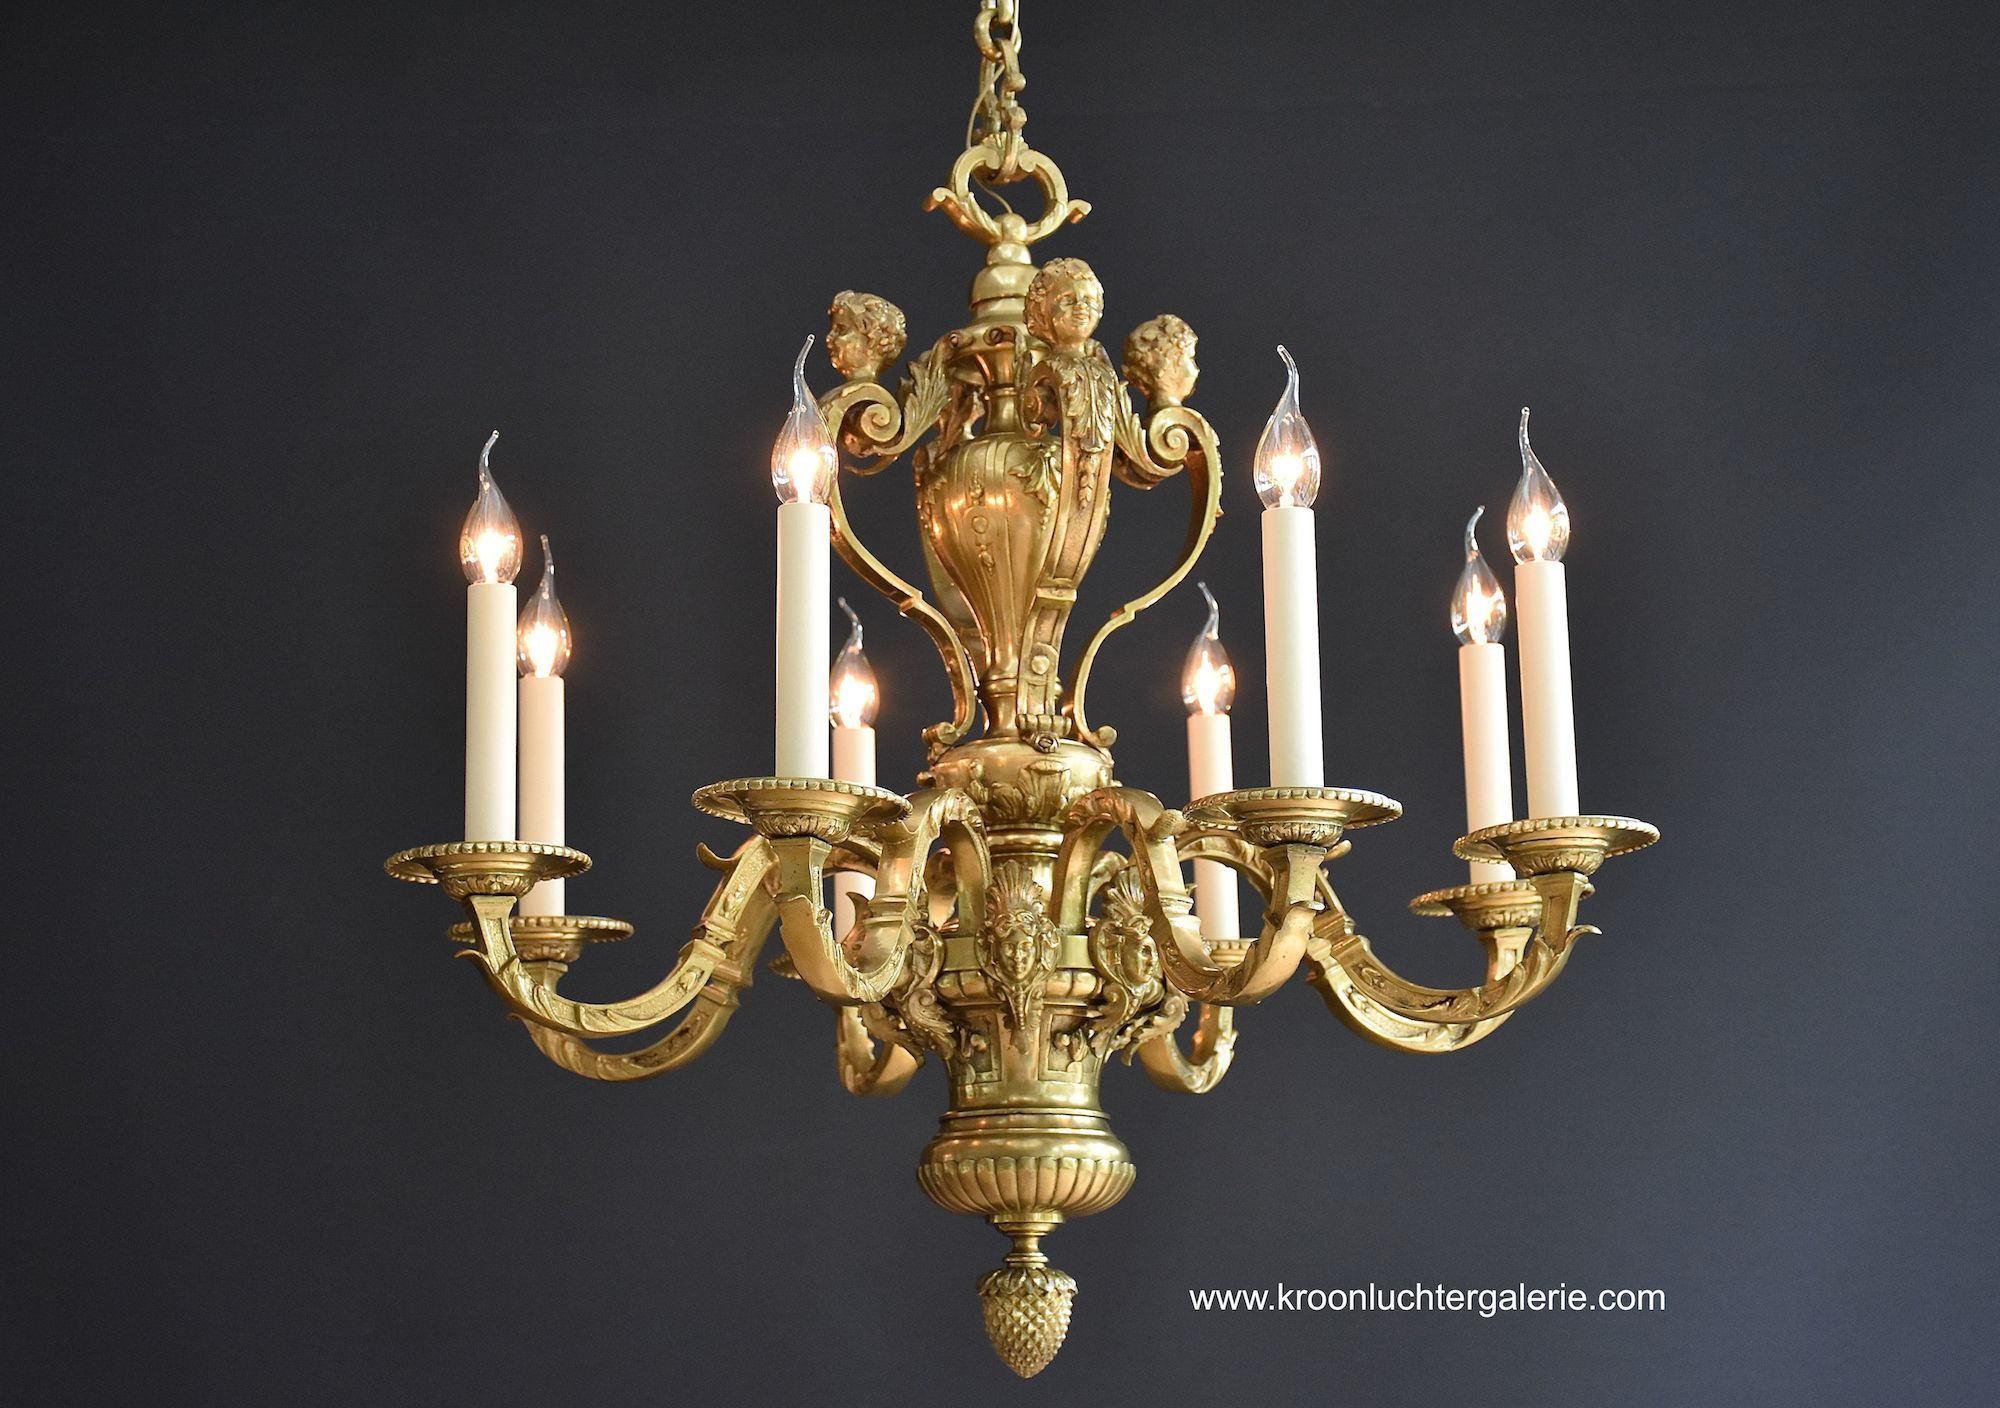 Antique French 'Mazarin' chandelier, Louis XVI style